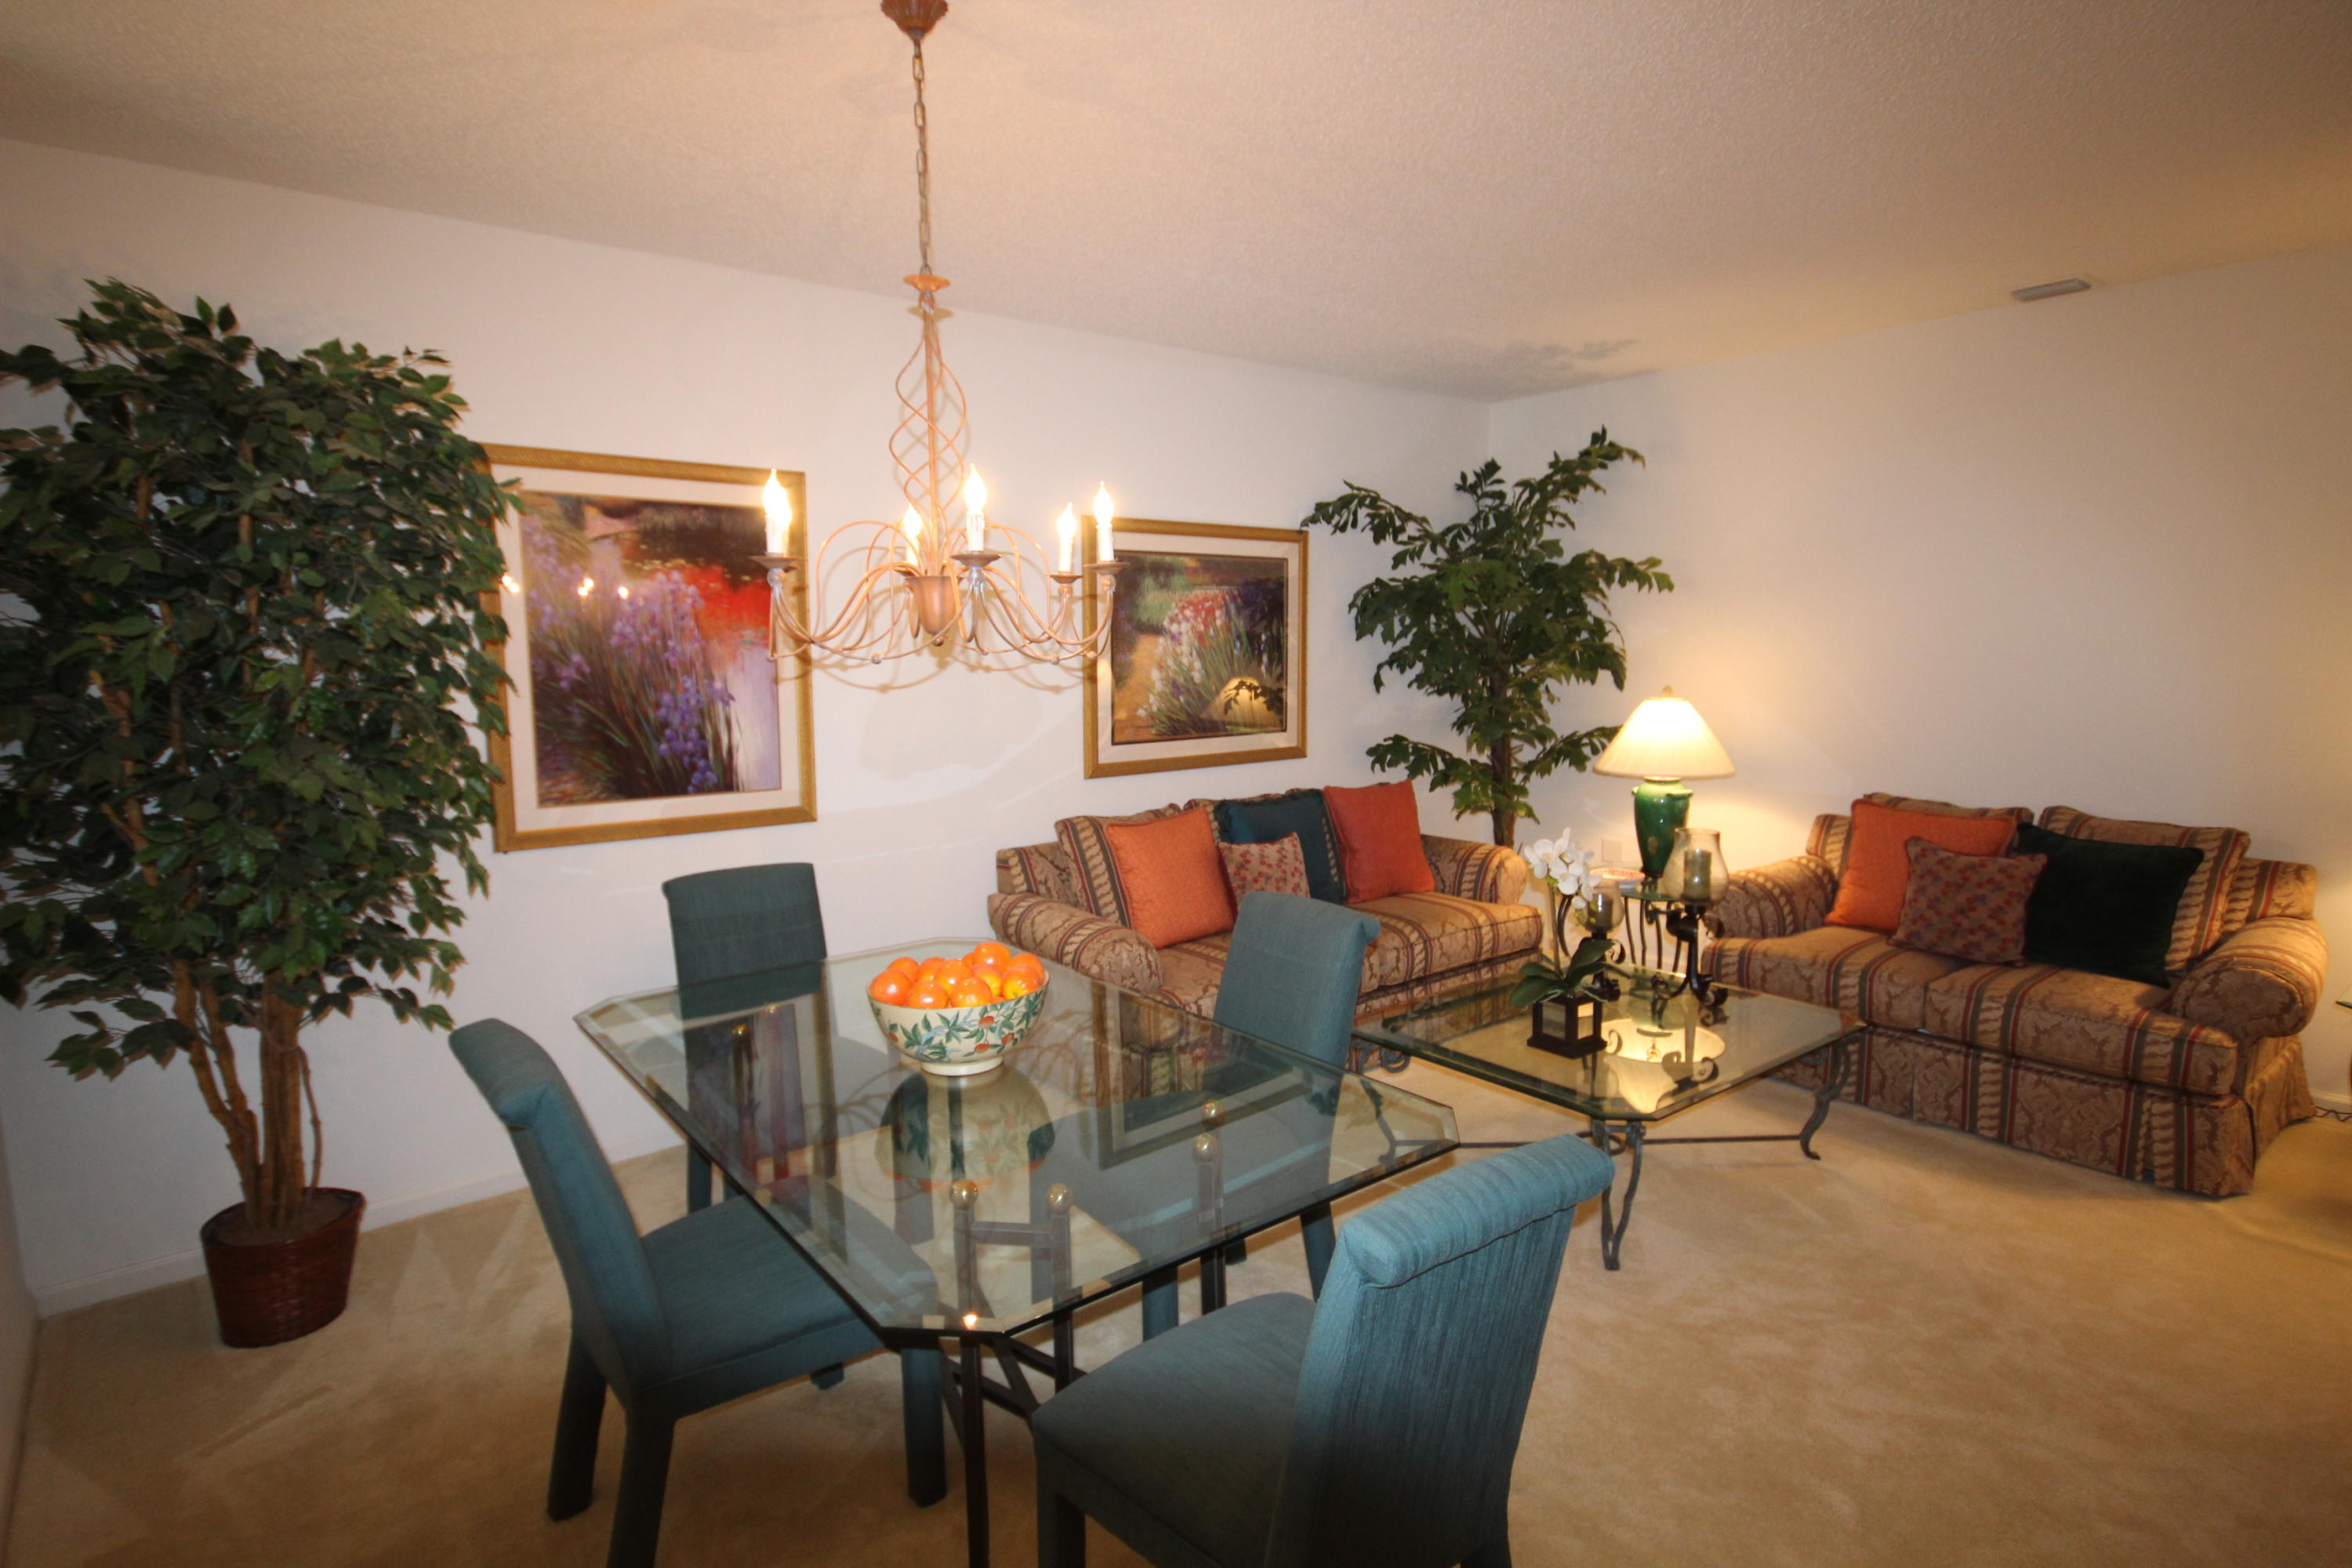 LIVING-DINING ROOMS